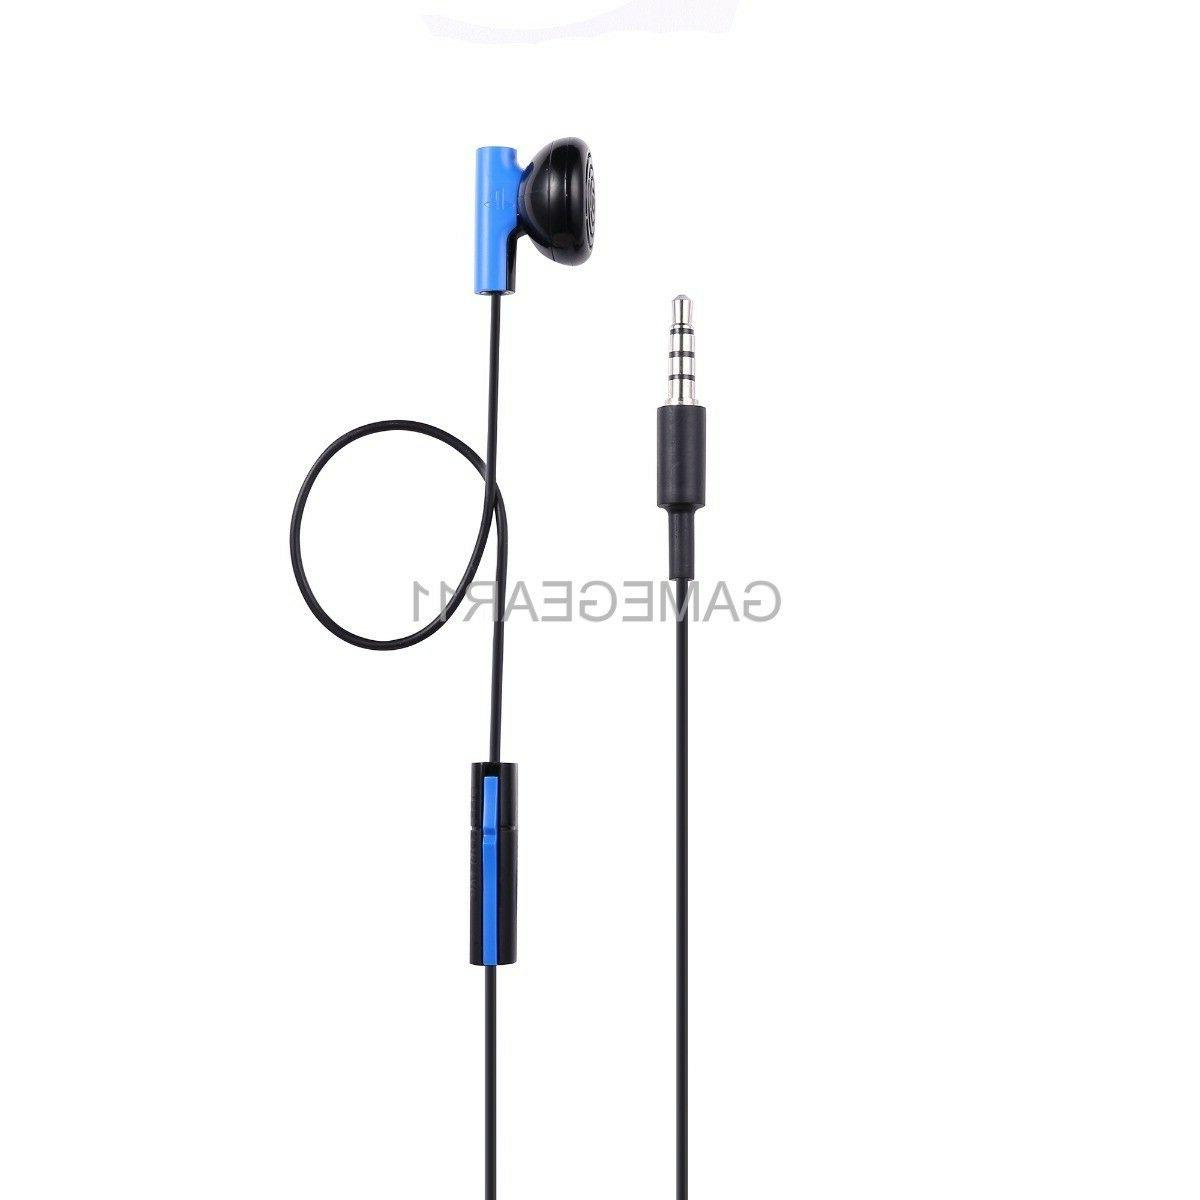 Sony Playstation 4 PS4 Headset Earbud Microphone Earpiece